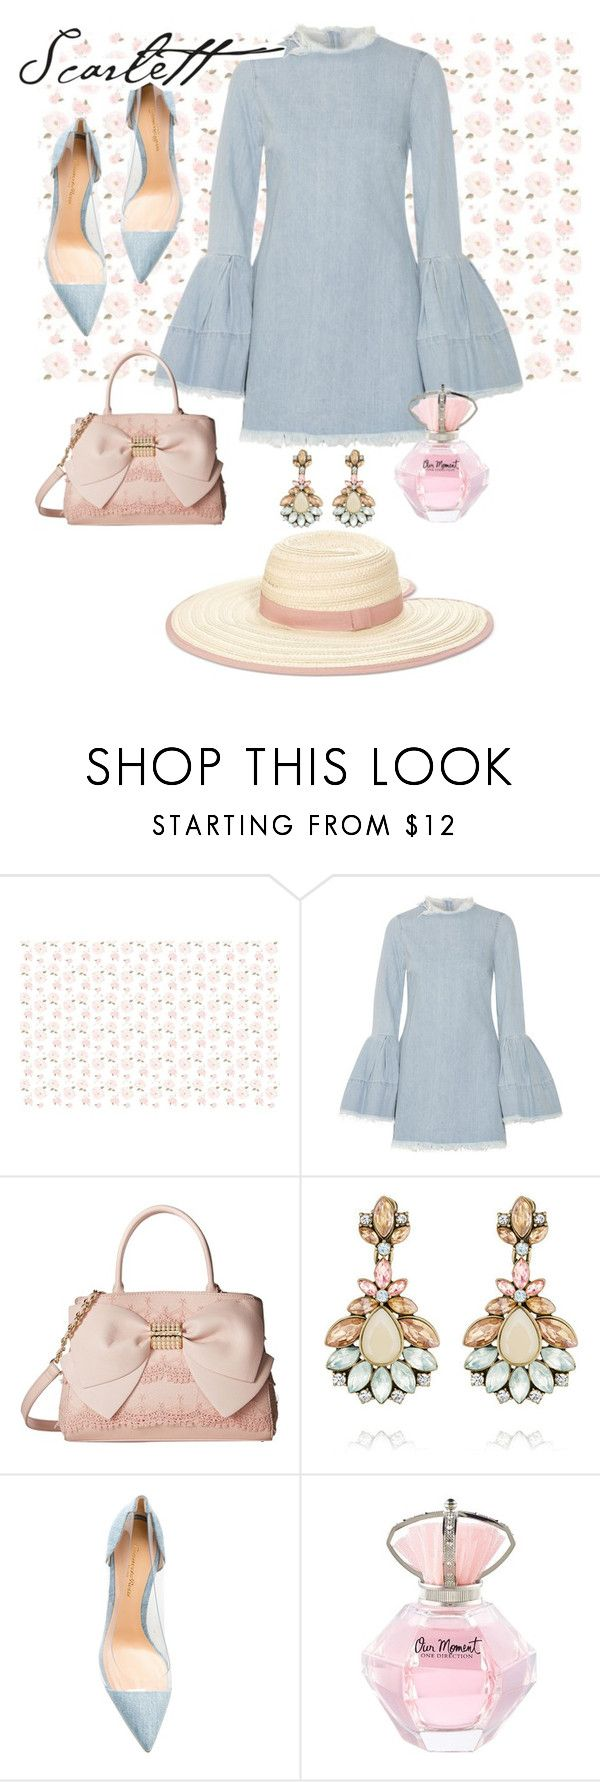 """""""Untitled #152"""" by etotnikzanyat ❤ liked on Polyvore featuring Marques'Almeida, Betsey Johnson, Chloe + Isabel, Gianvito Rossi and INC International Concepts"""